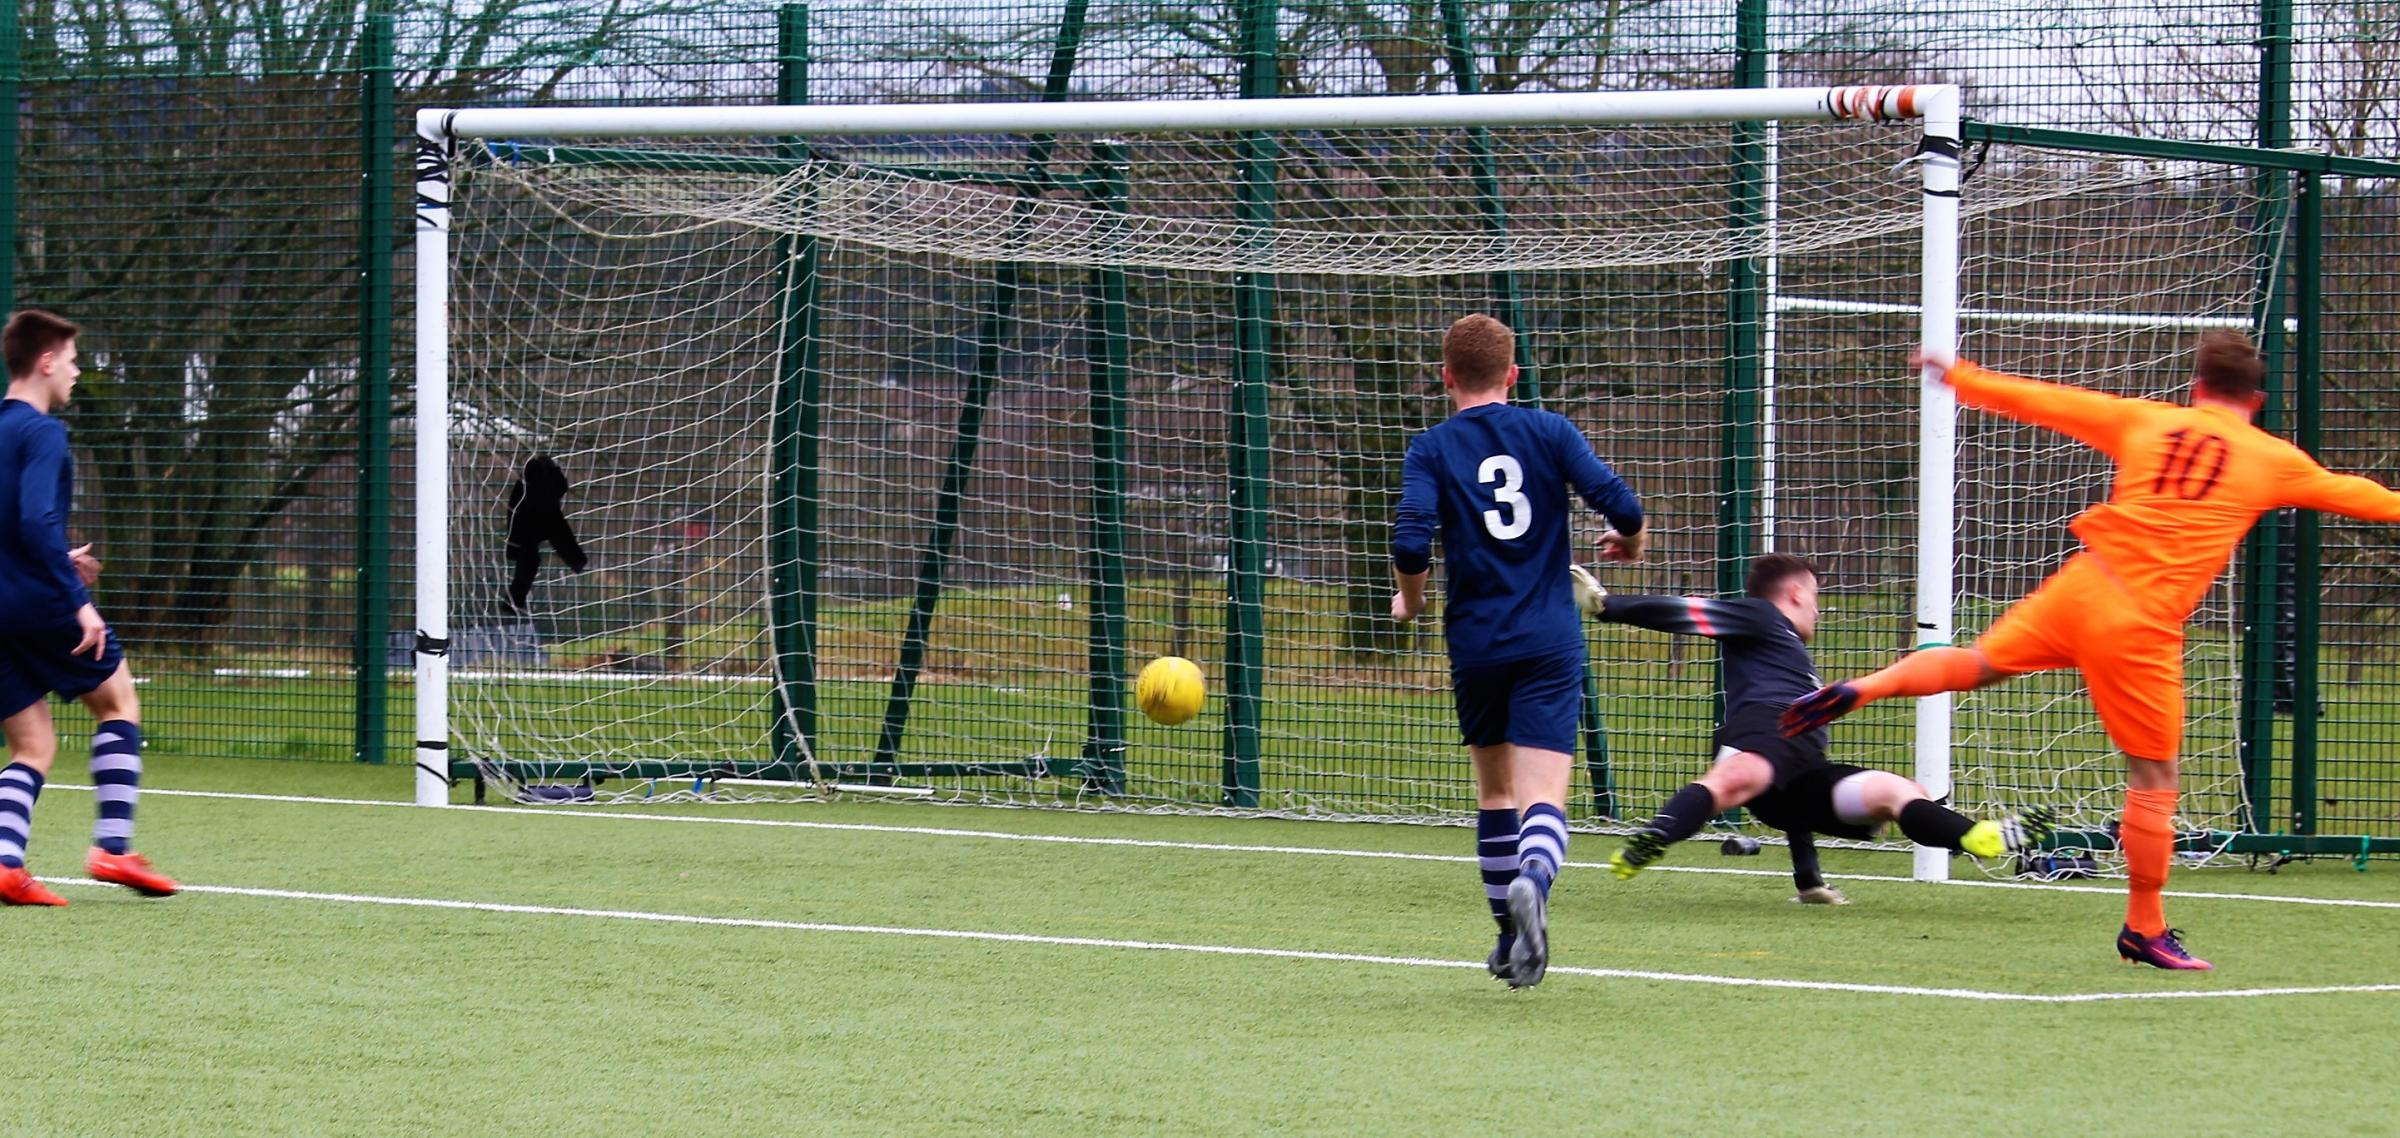 Doune Castle's David Goodwillie makes it 1 - 1 against Strathclyde University